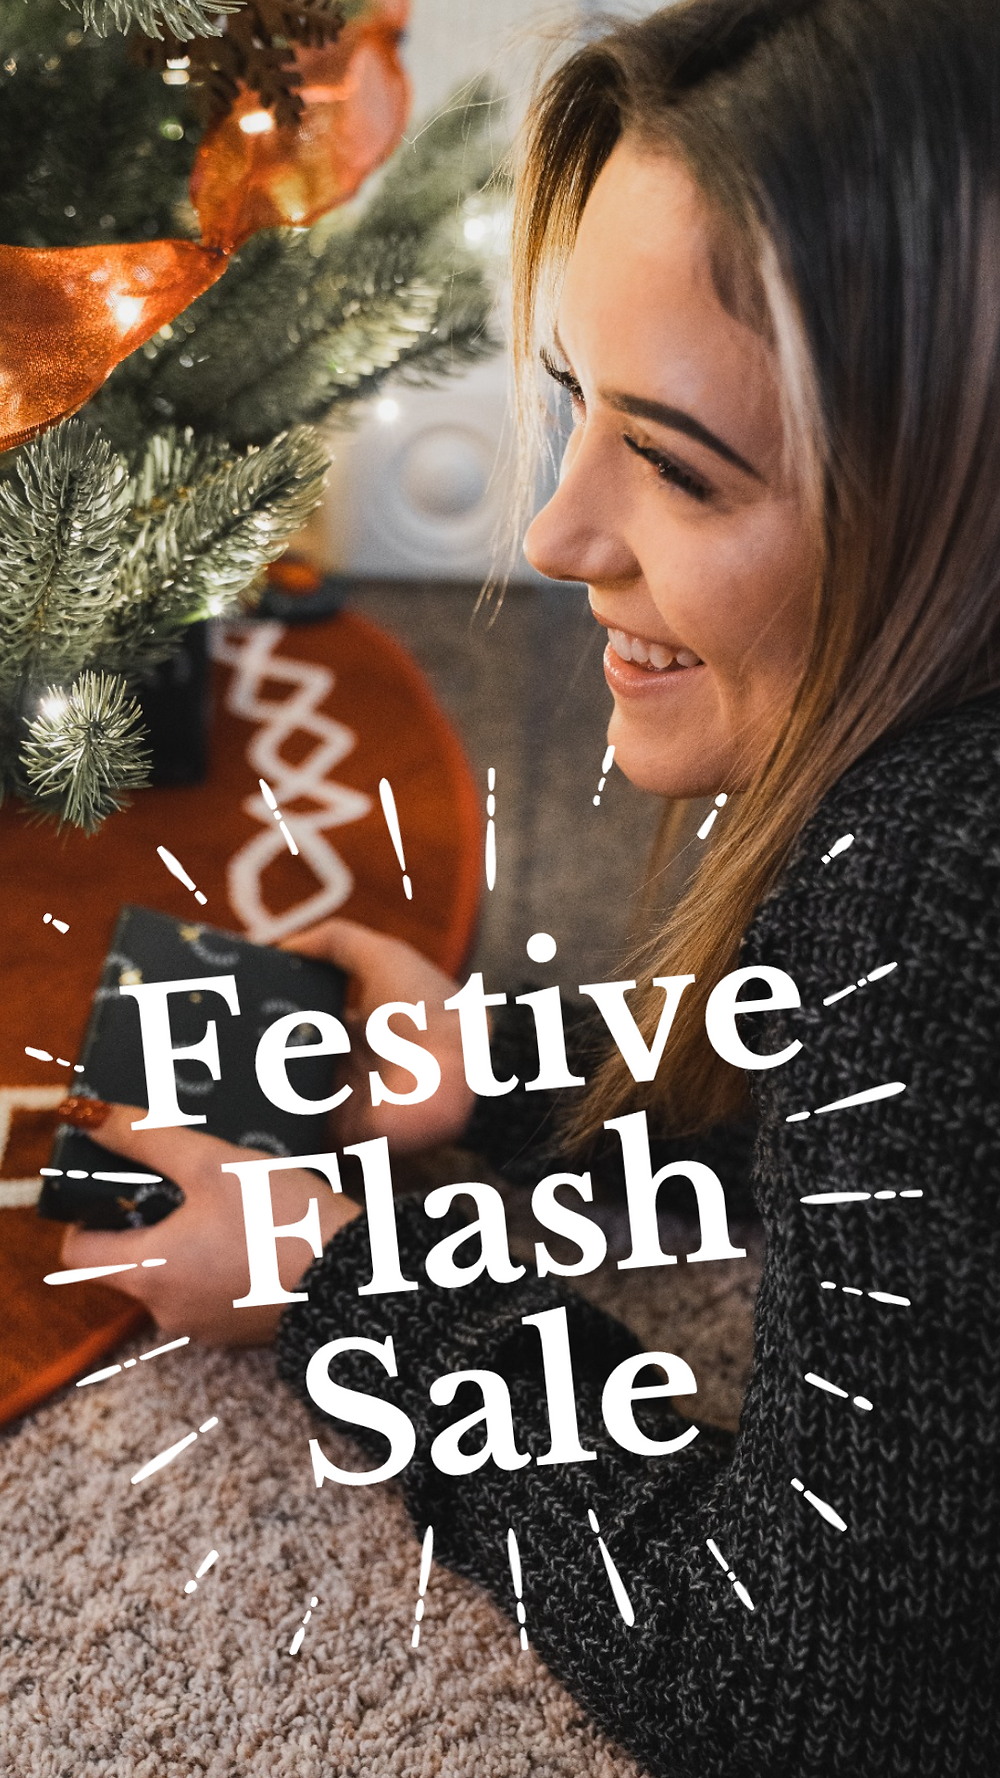 Social media story template for Instagram or Facebook with girl under Christmas tree and festive flash sale design